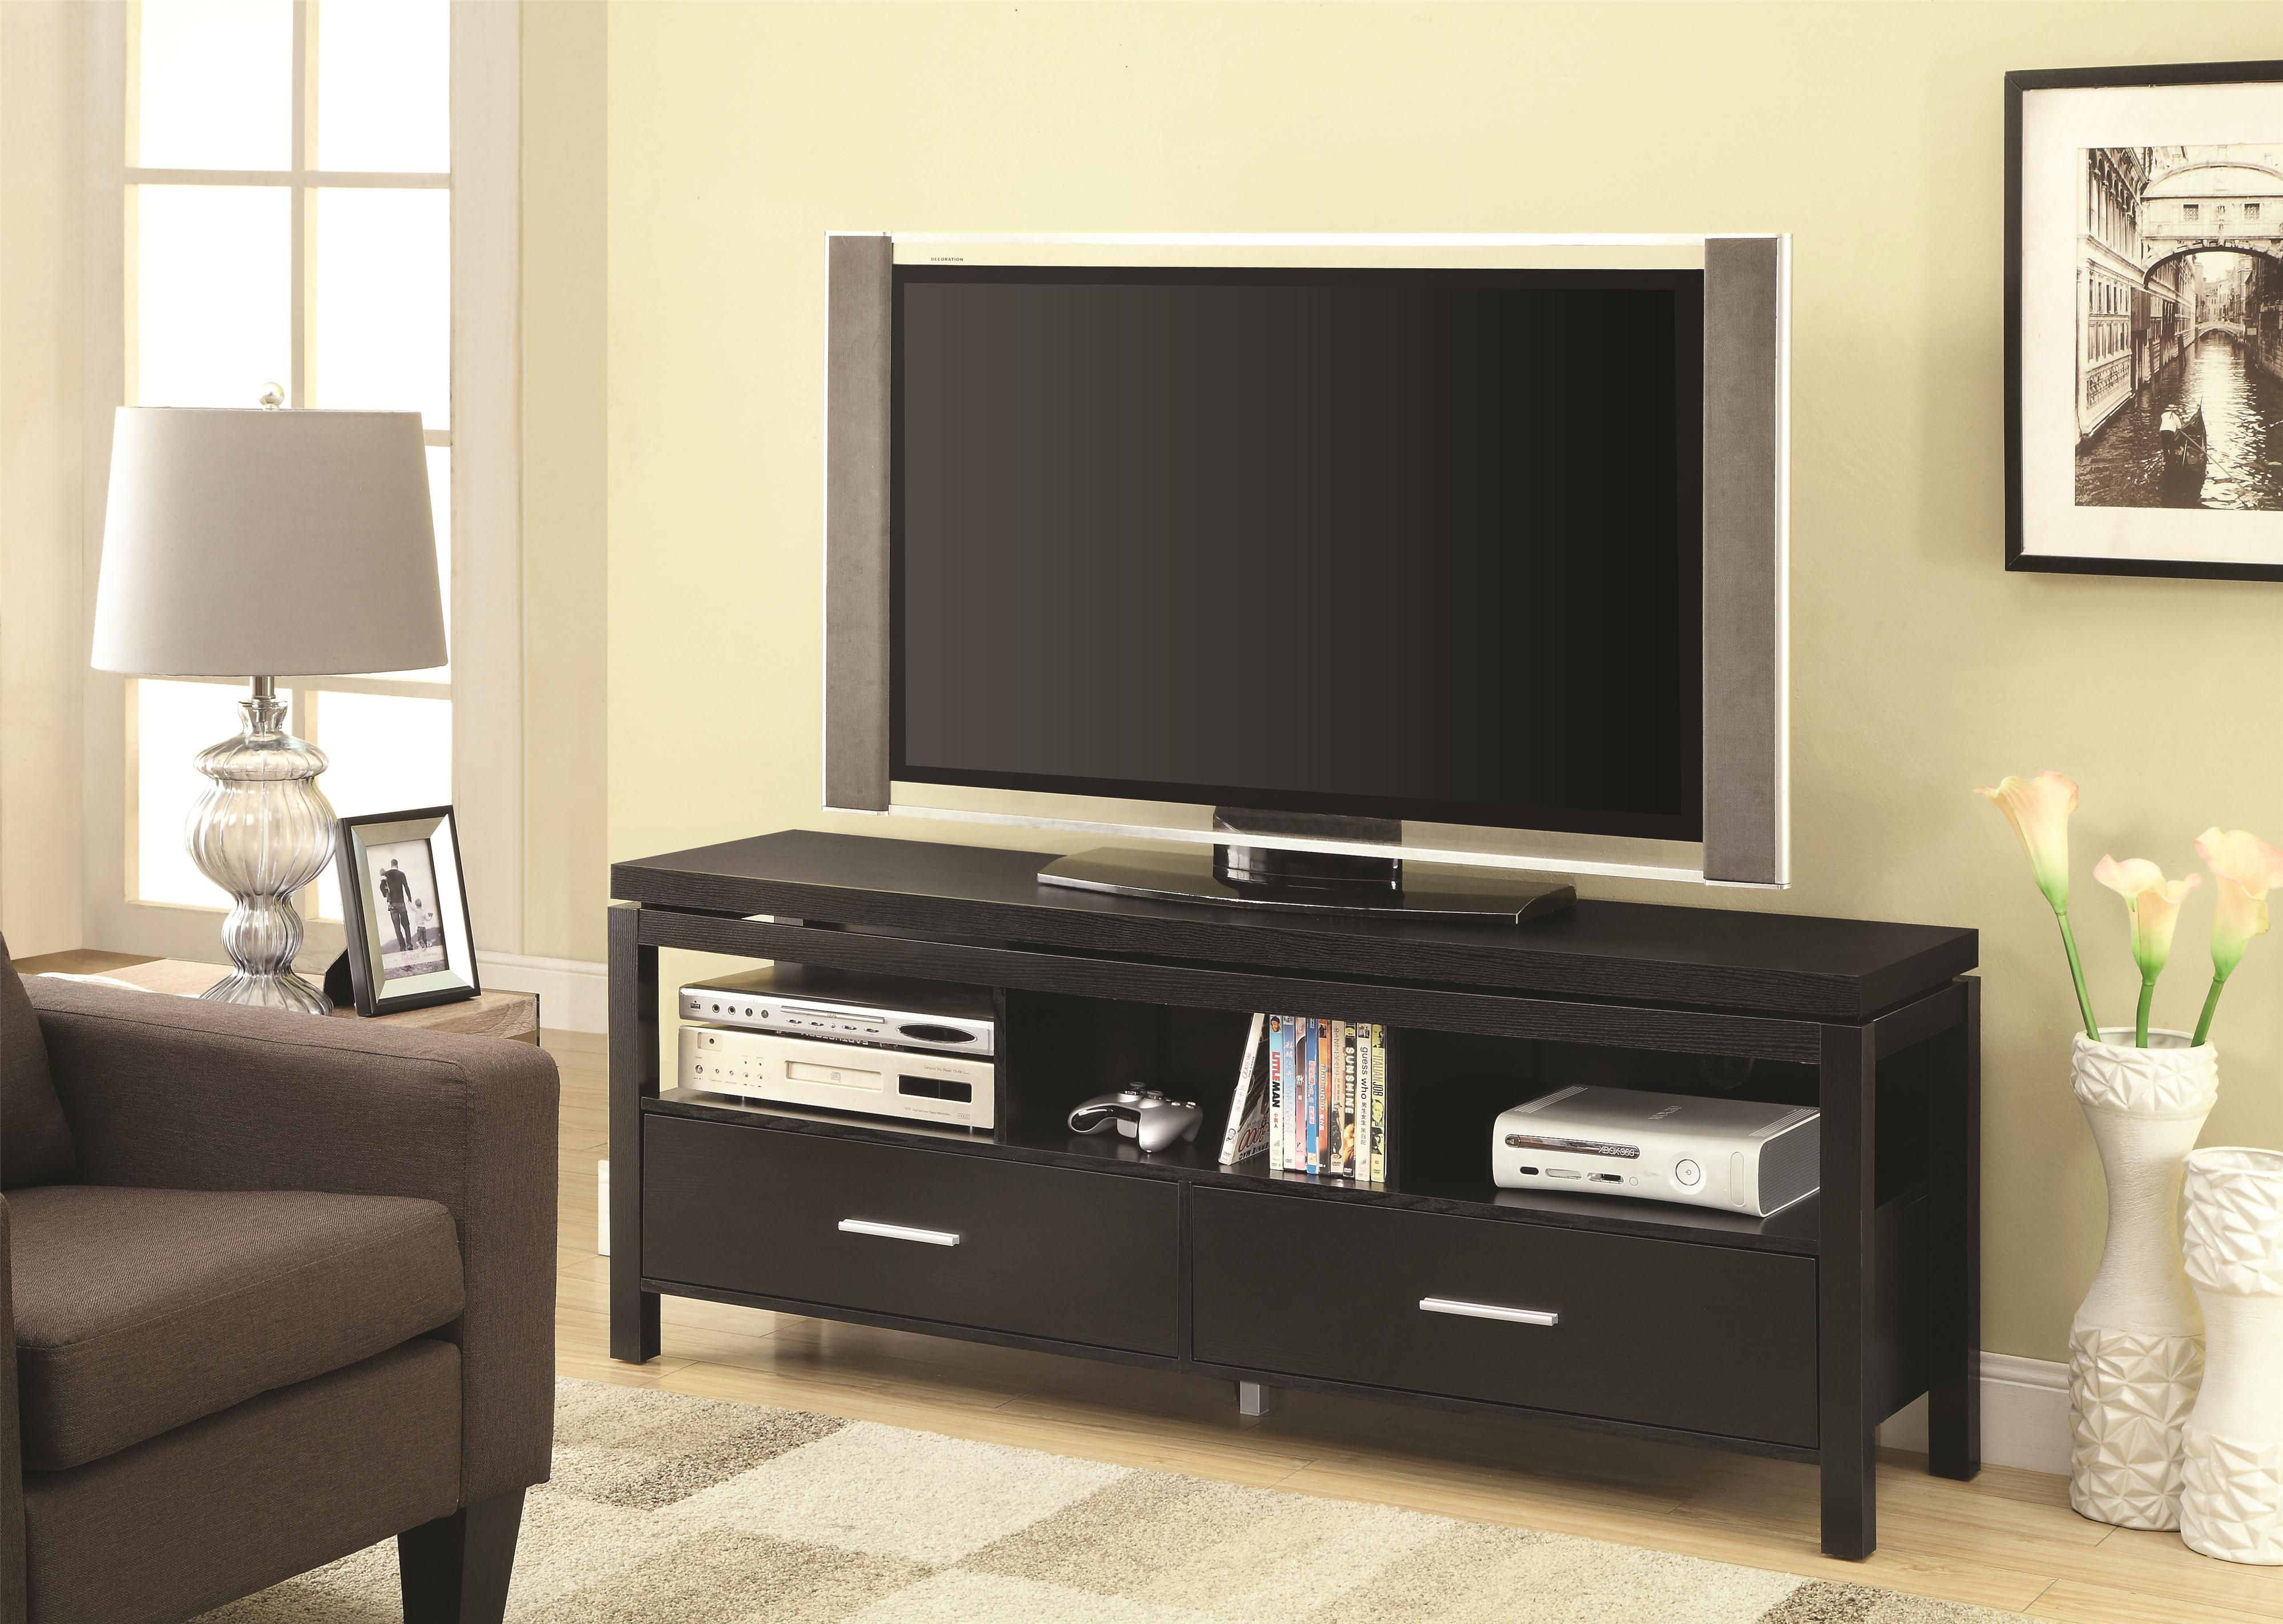 Wall Units Tv Console W Drawers Quality Furniture At